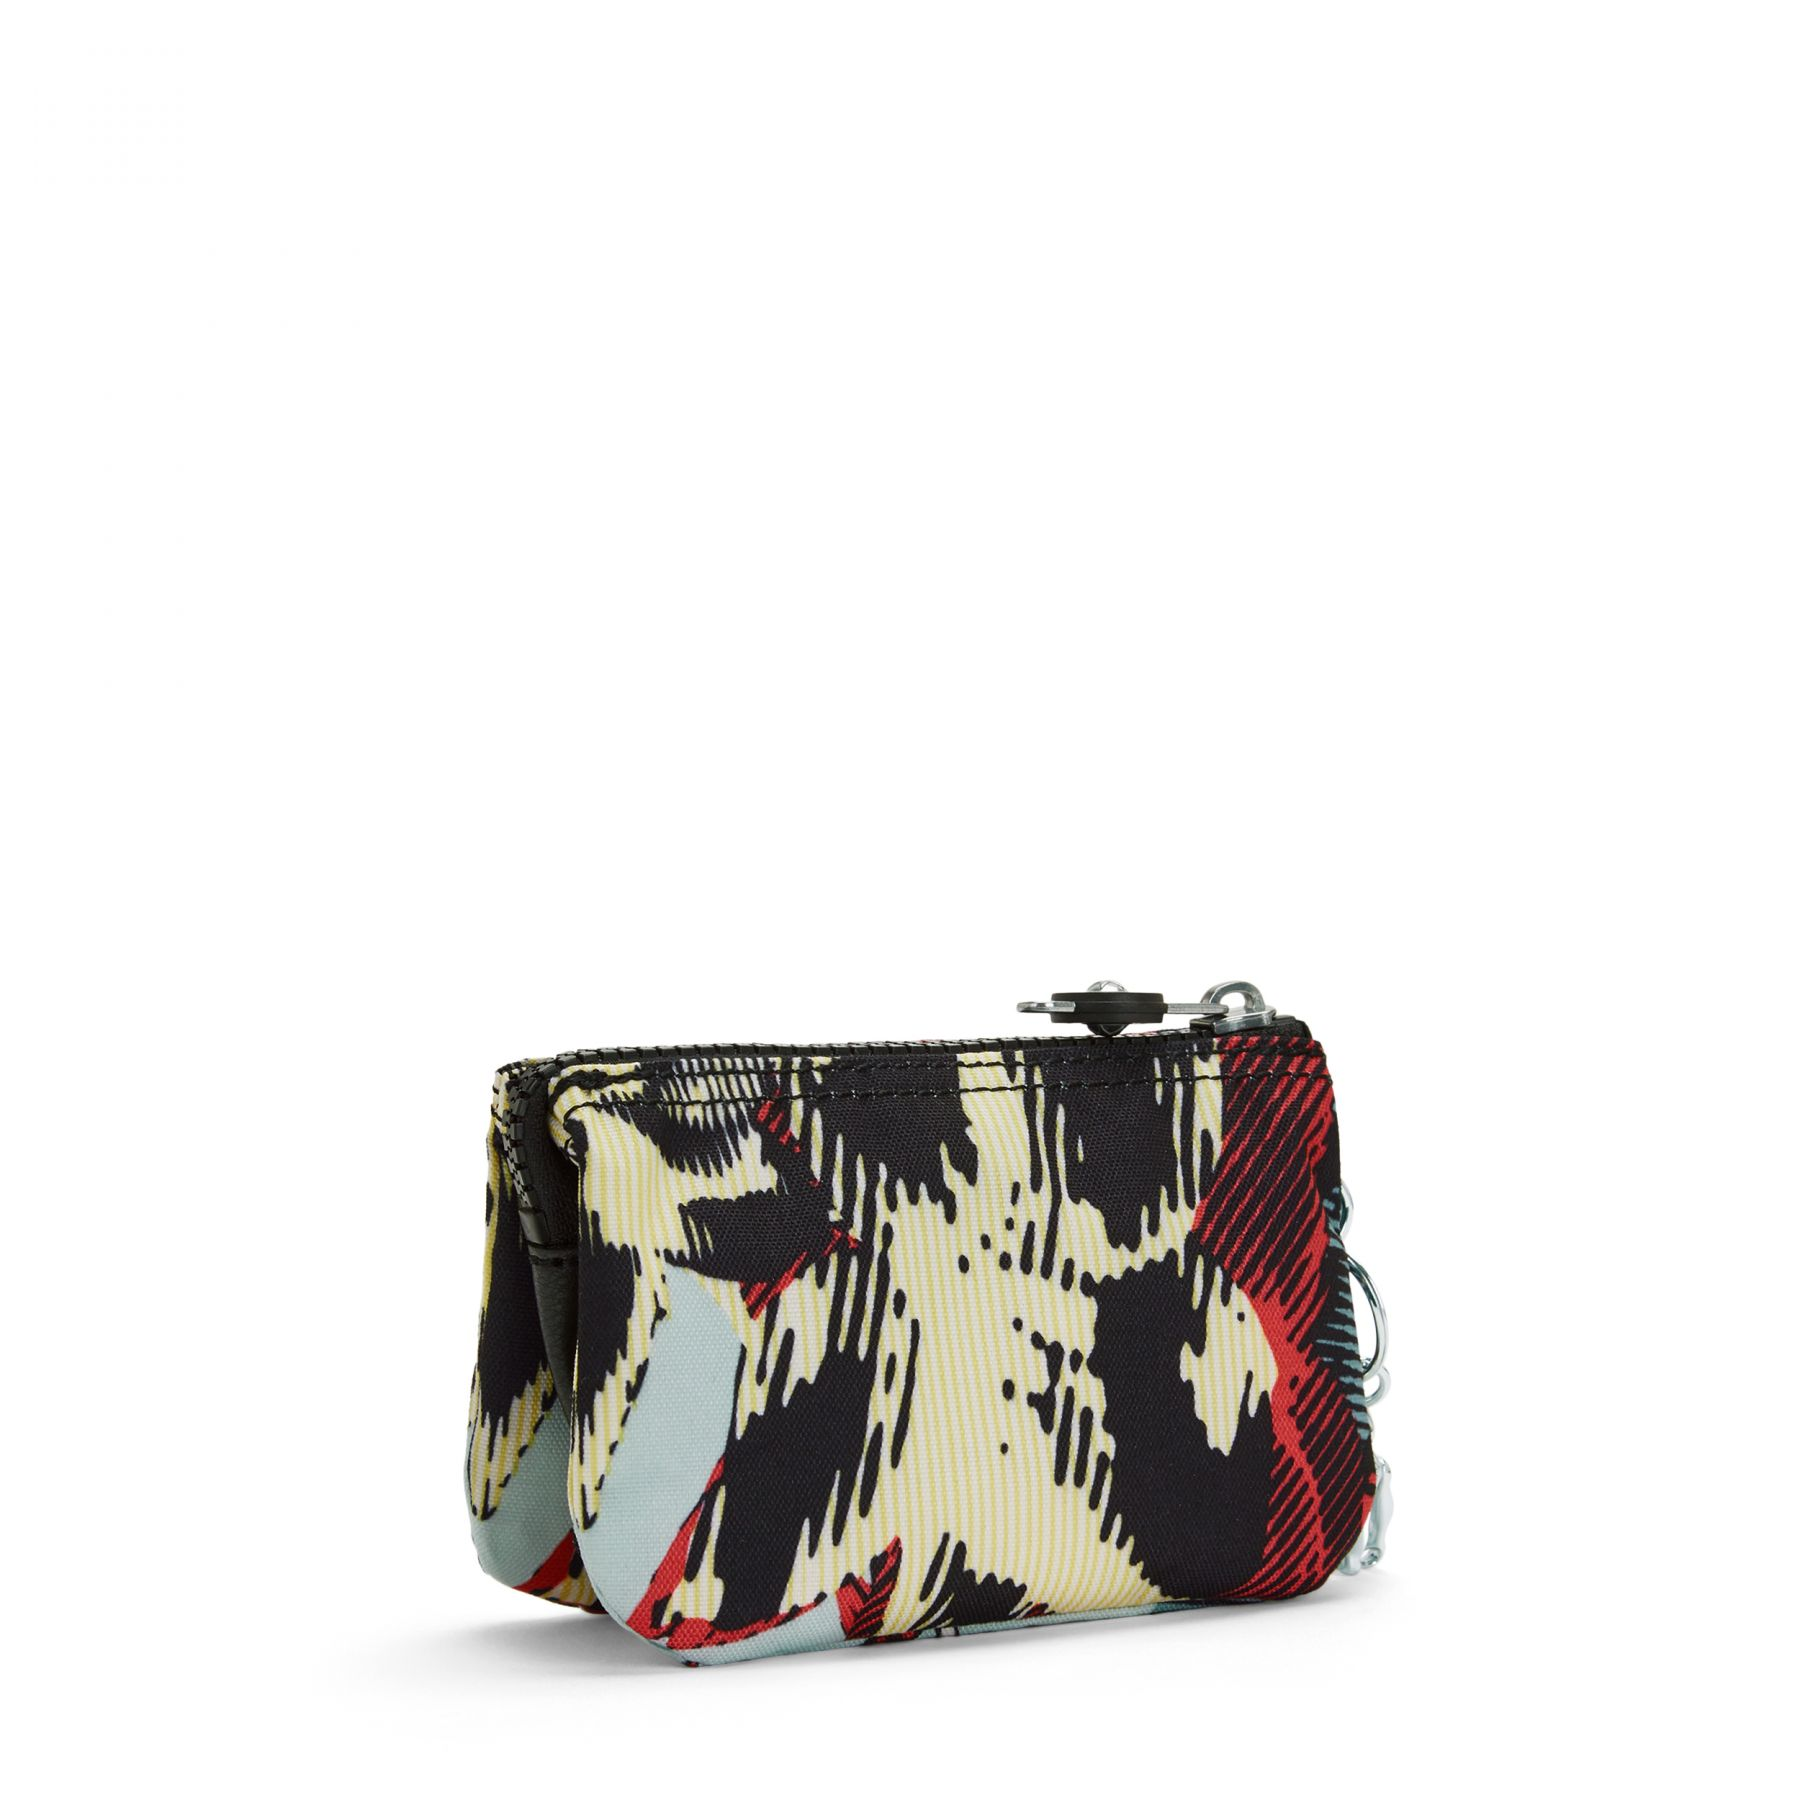 CREATIVITY S ACCESSORIES by Kipling - Back view